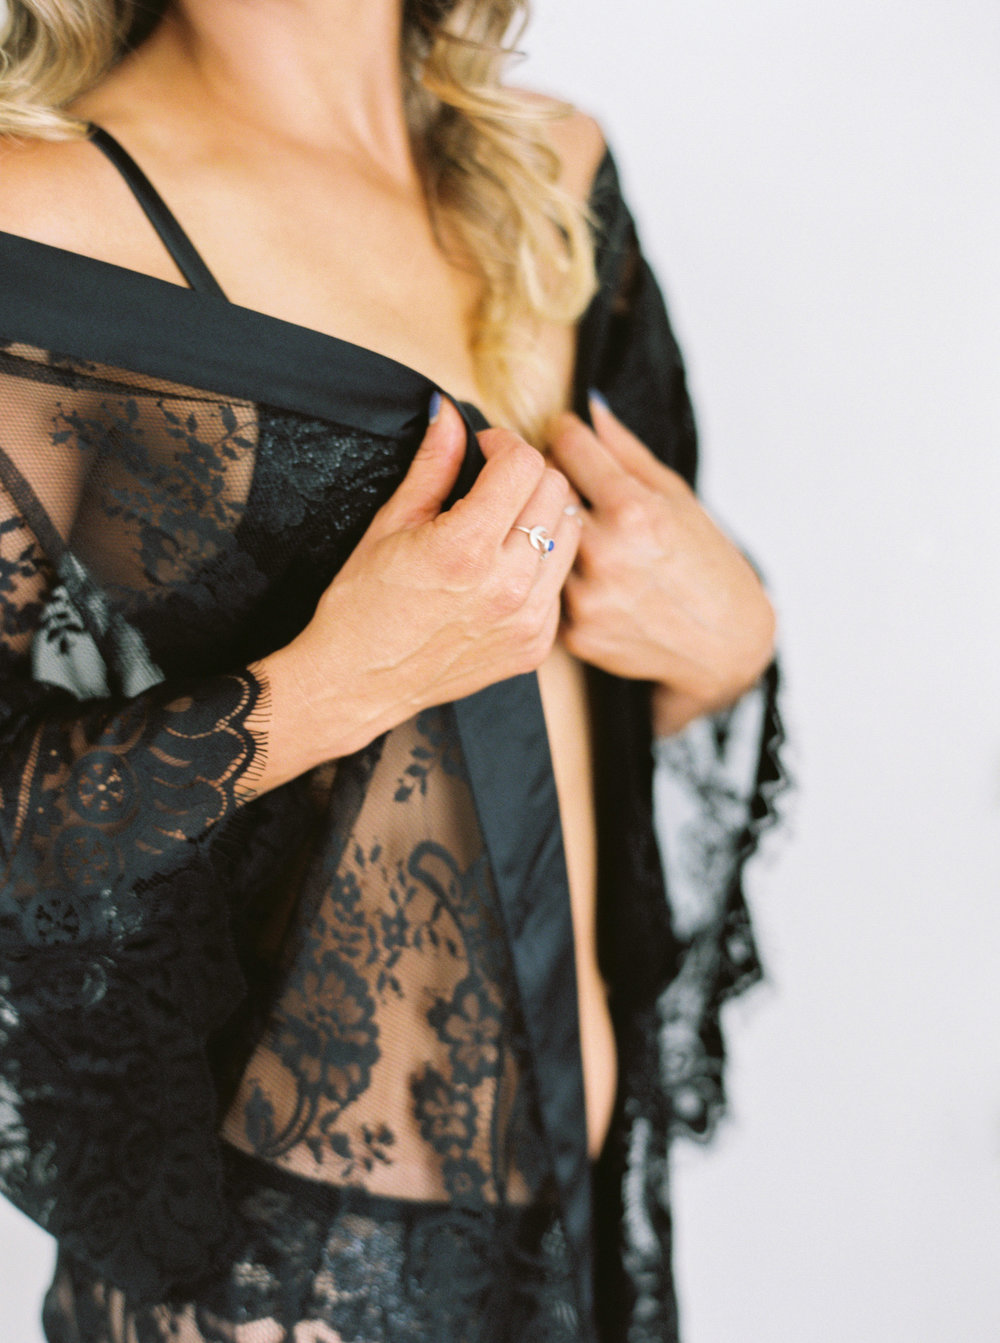 00008- Fine Art Film NSW Dubbo Mudgee Orange Bridal Boudoir Wedding Photographer Sheri McMahon in black lace lingere_.jpg